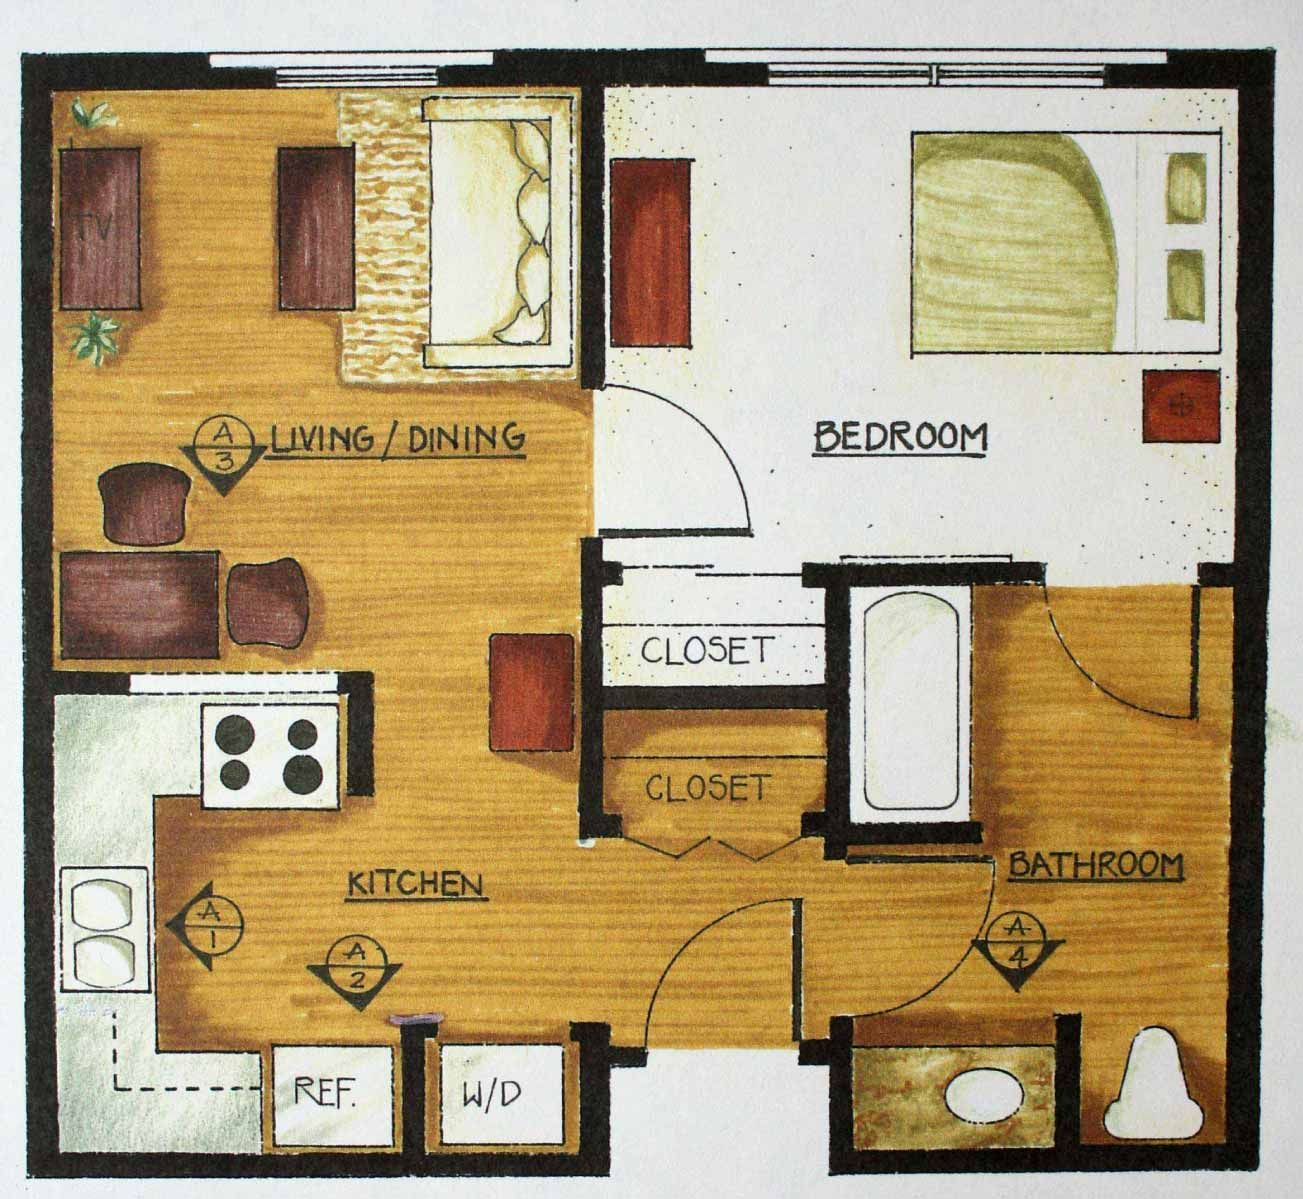 Simple floor plan .. nice for mother in law ...has 2 closets, washer